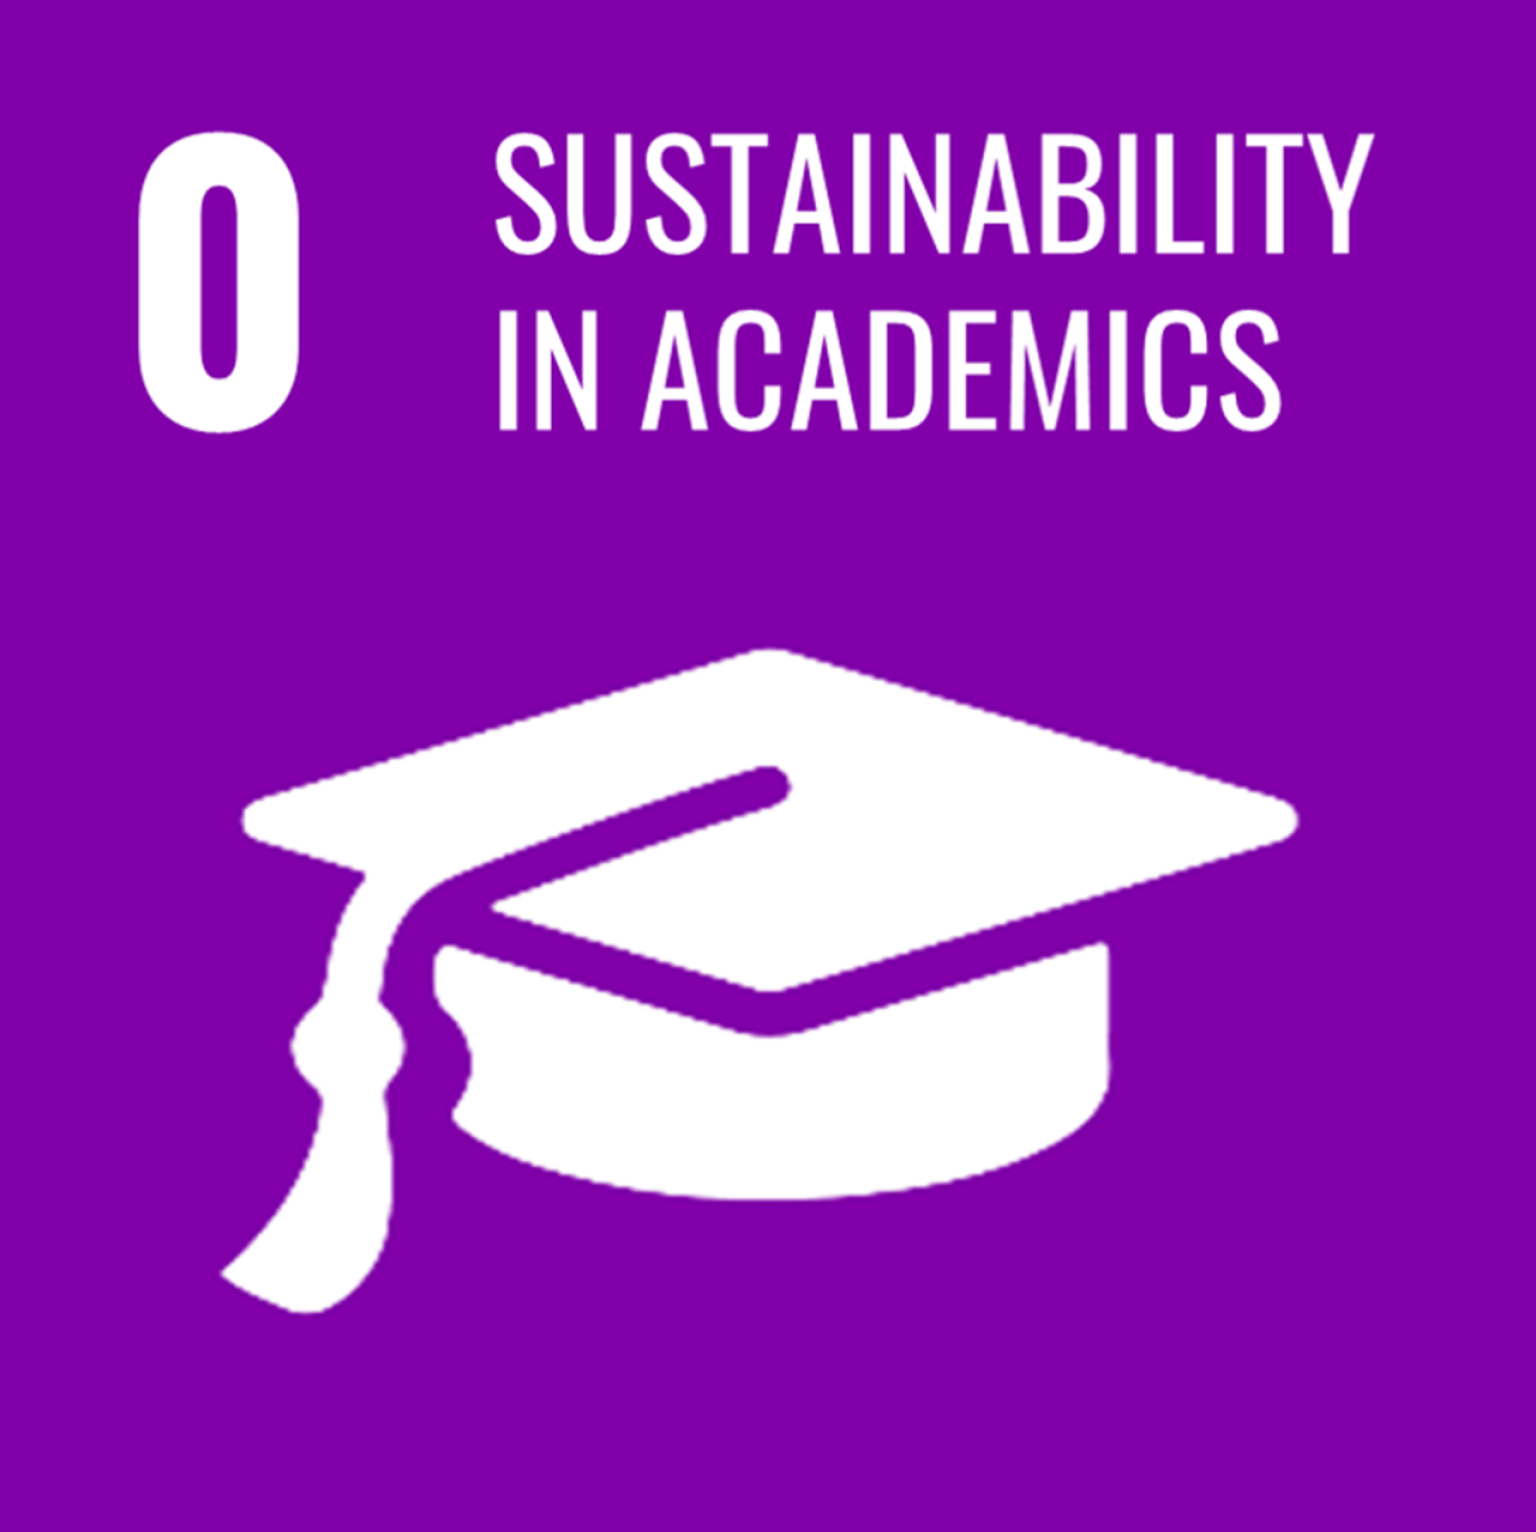 Goal 0: Sustainability in Academics